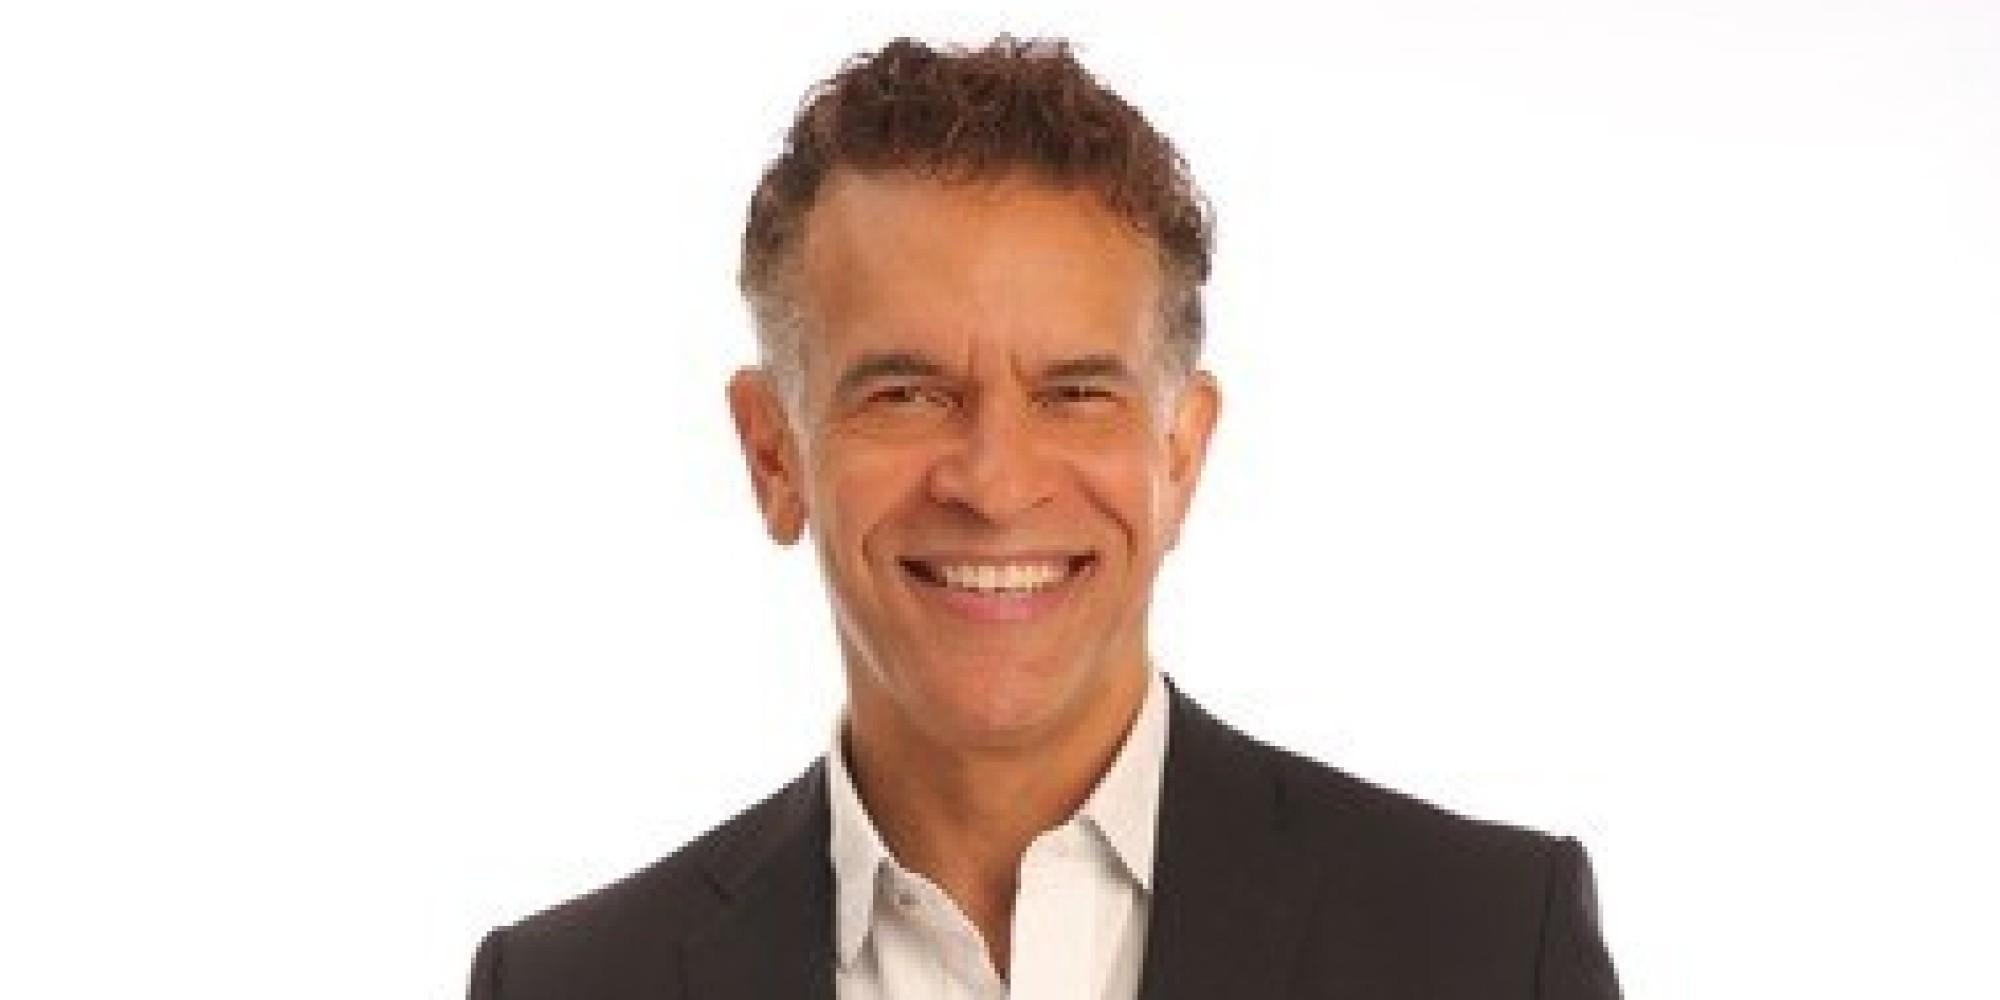 brian stokes mitchell official website